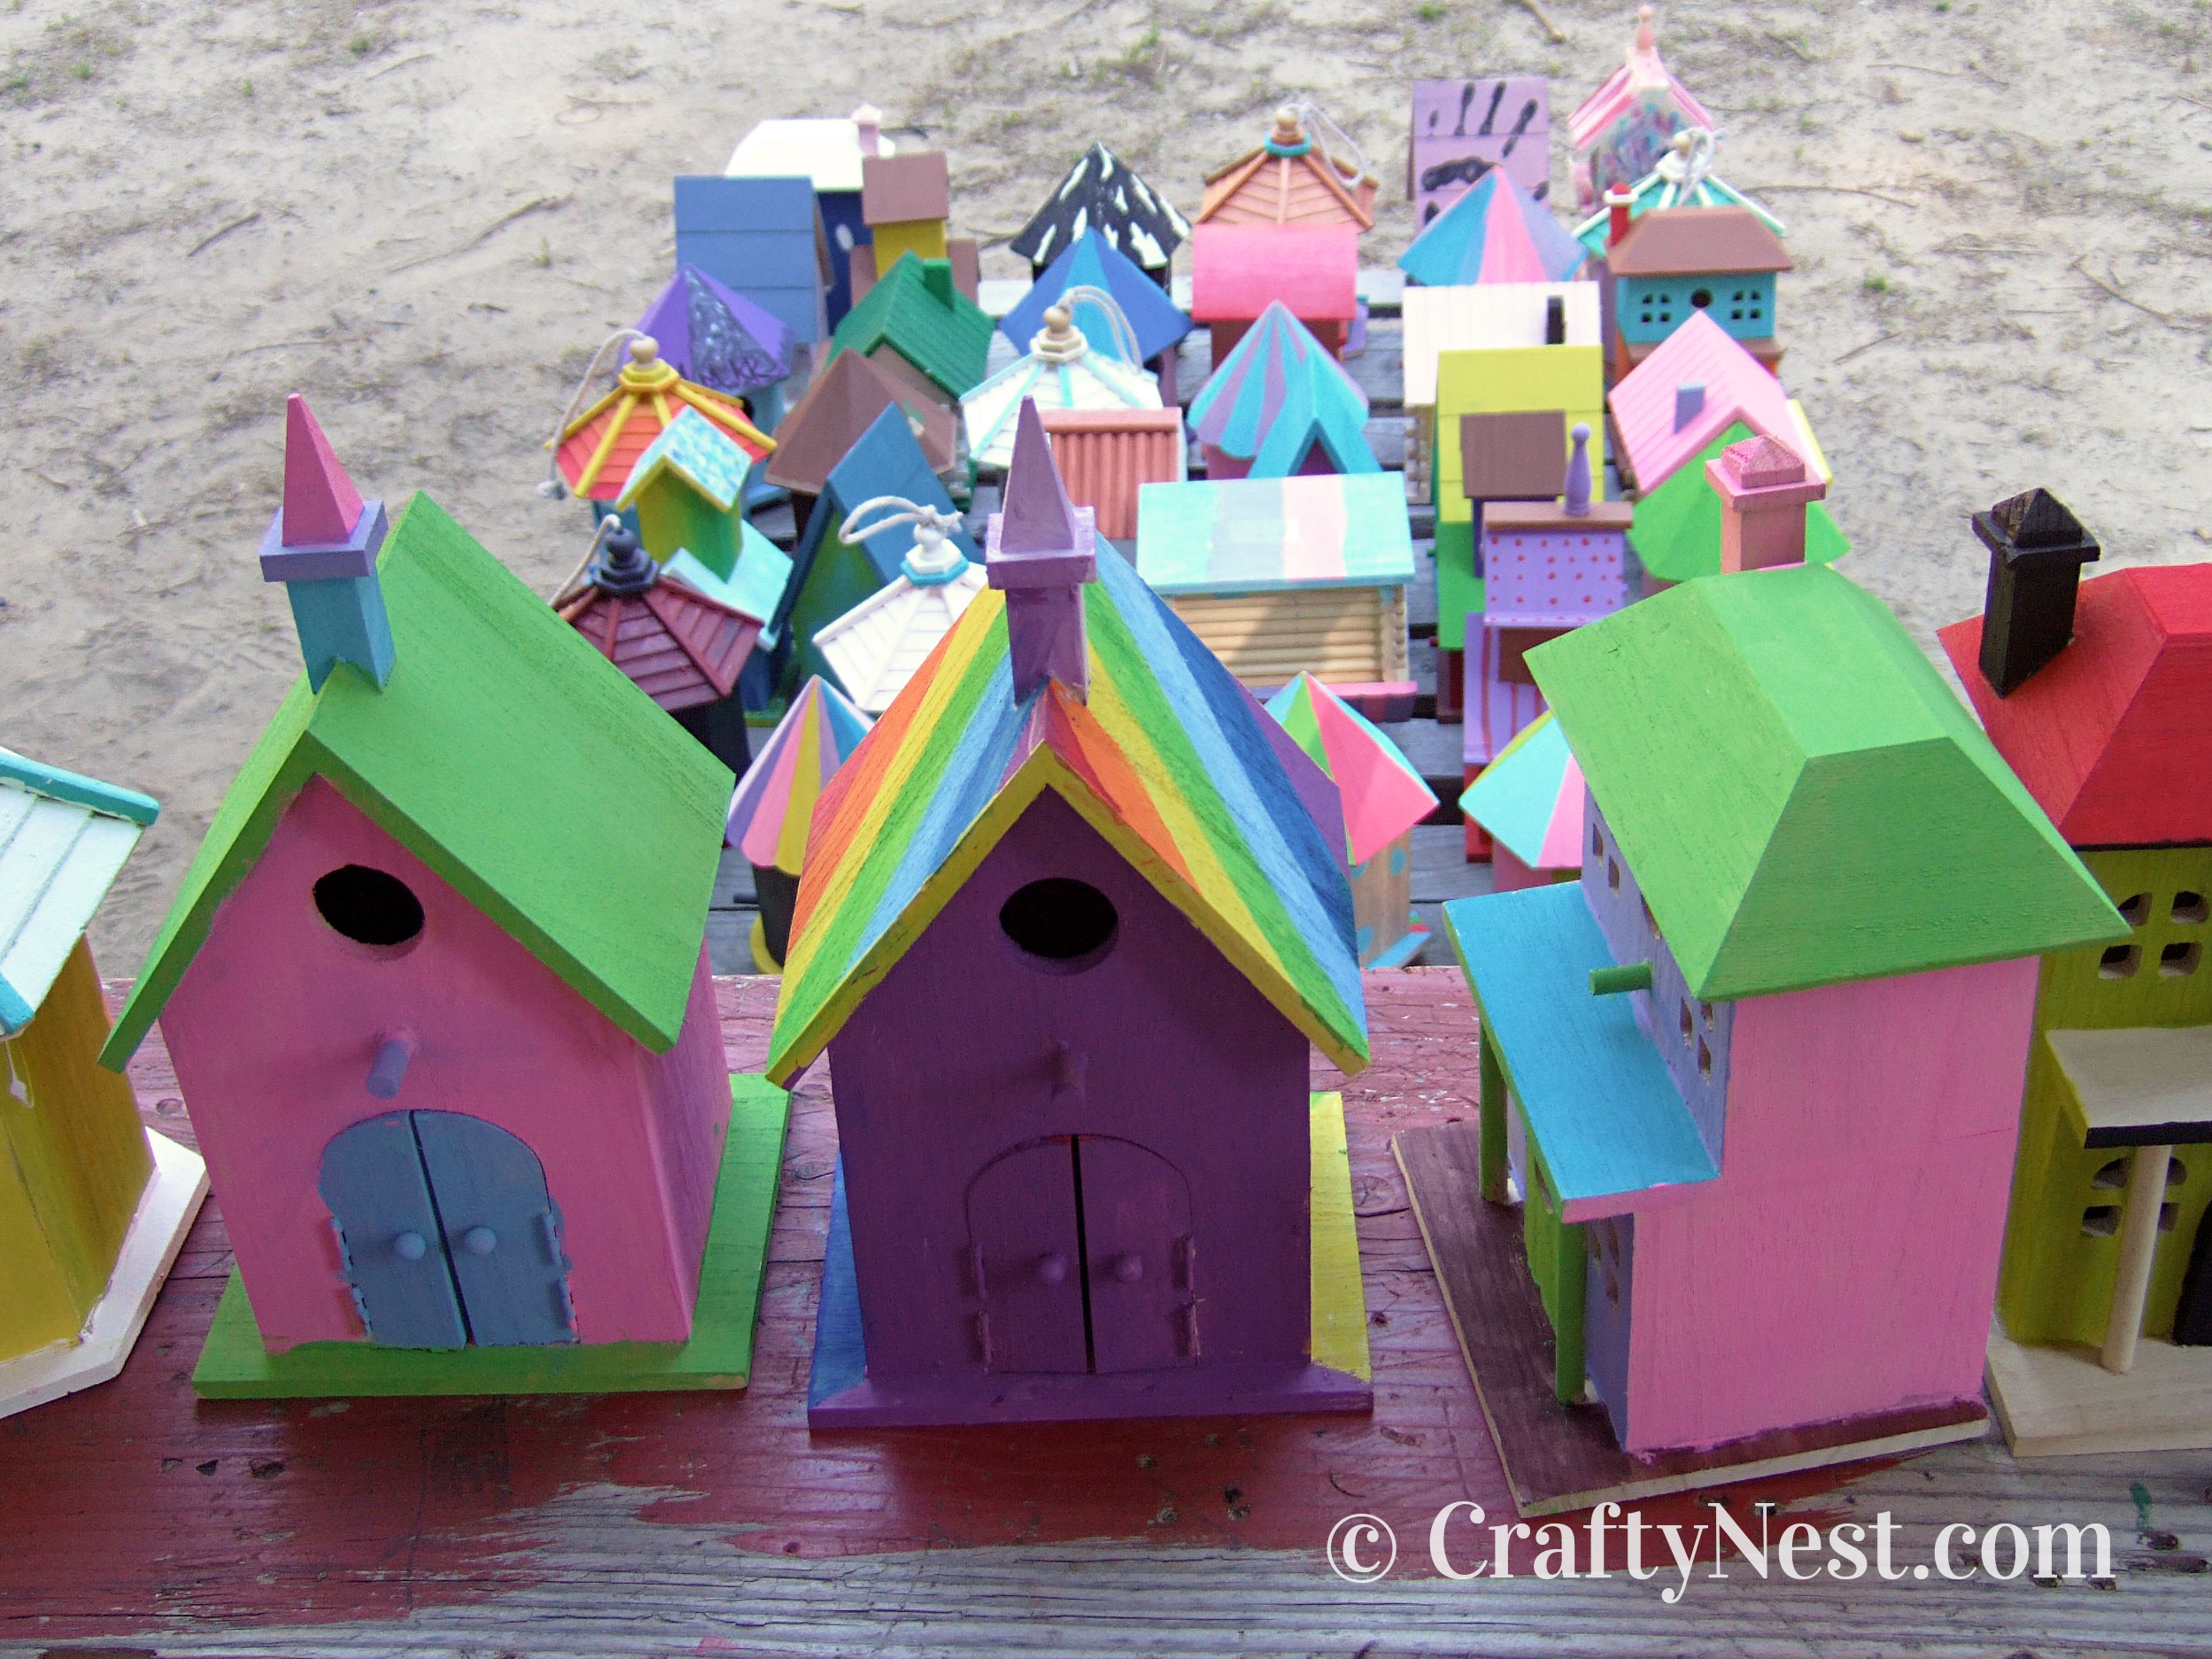 Many painted birdhouses, photo